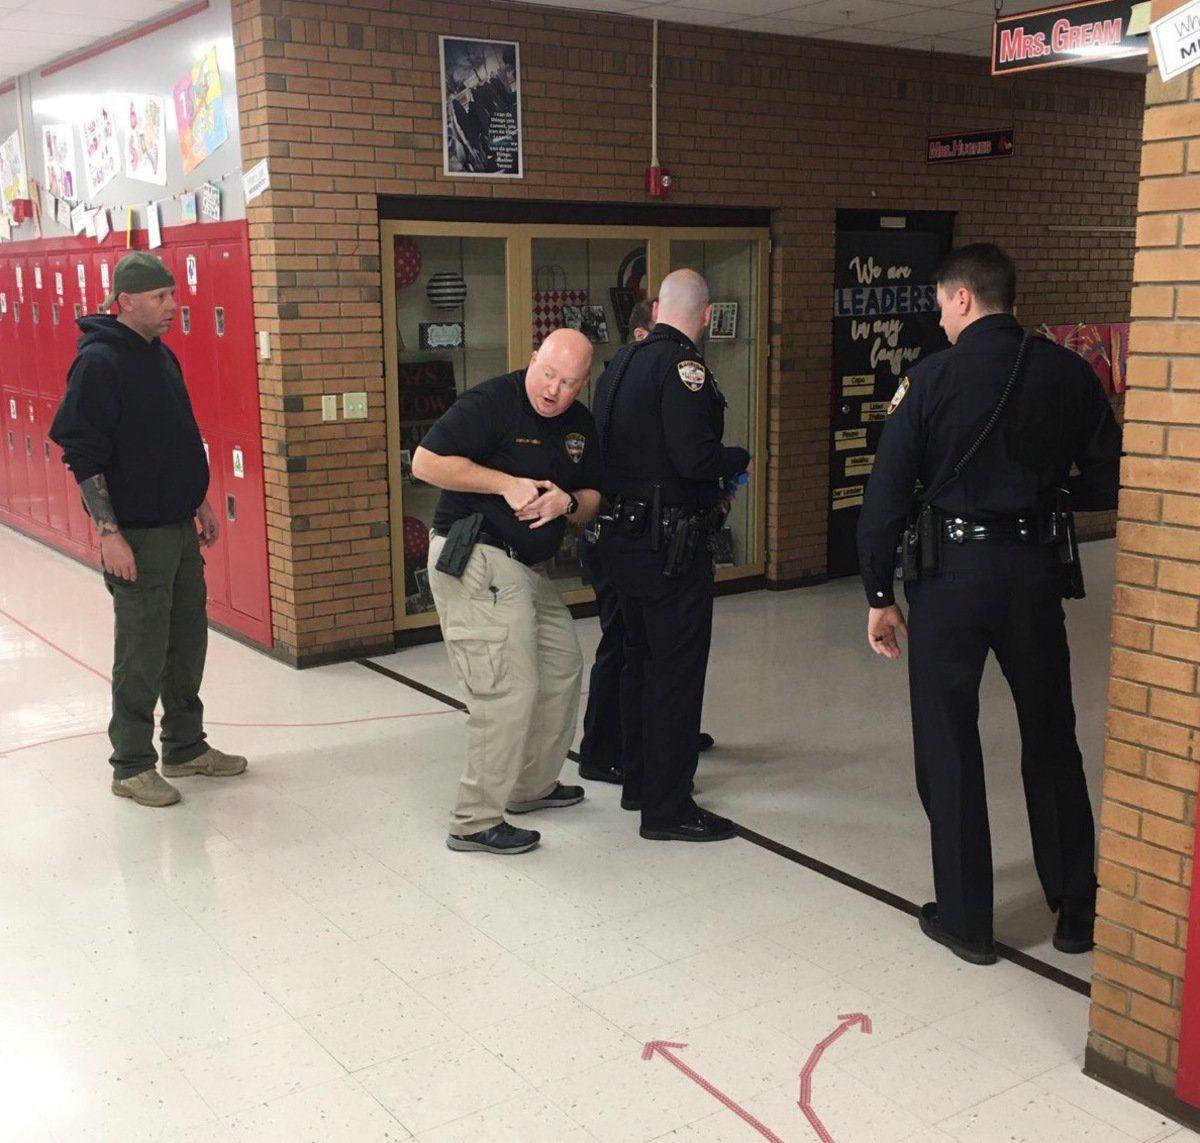 MPD undergoes active shooter training at Mayfield Middle